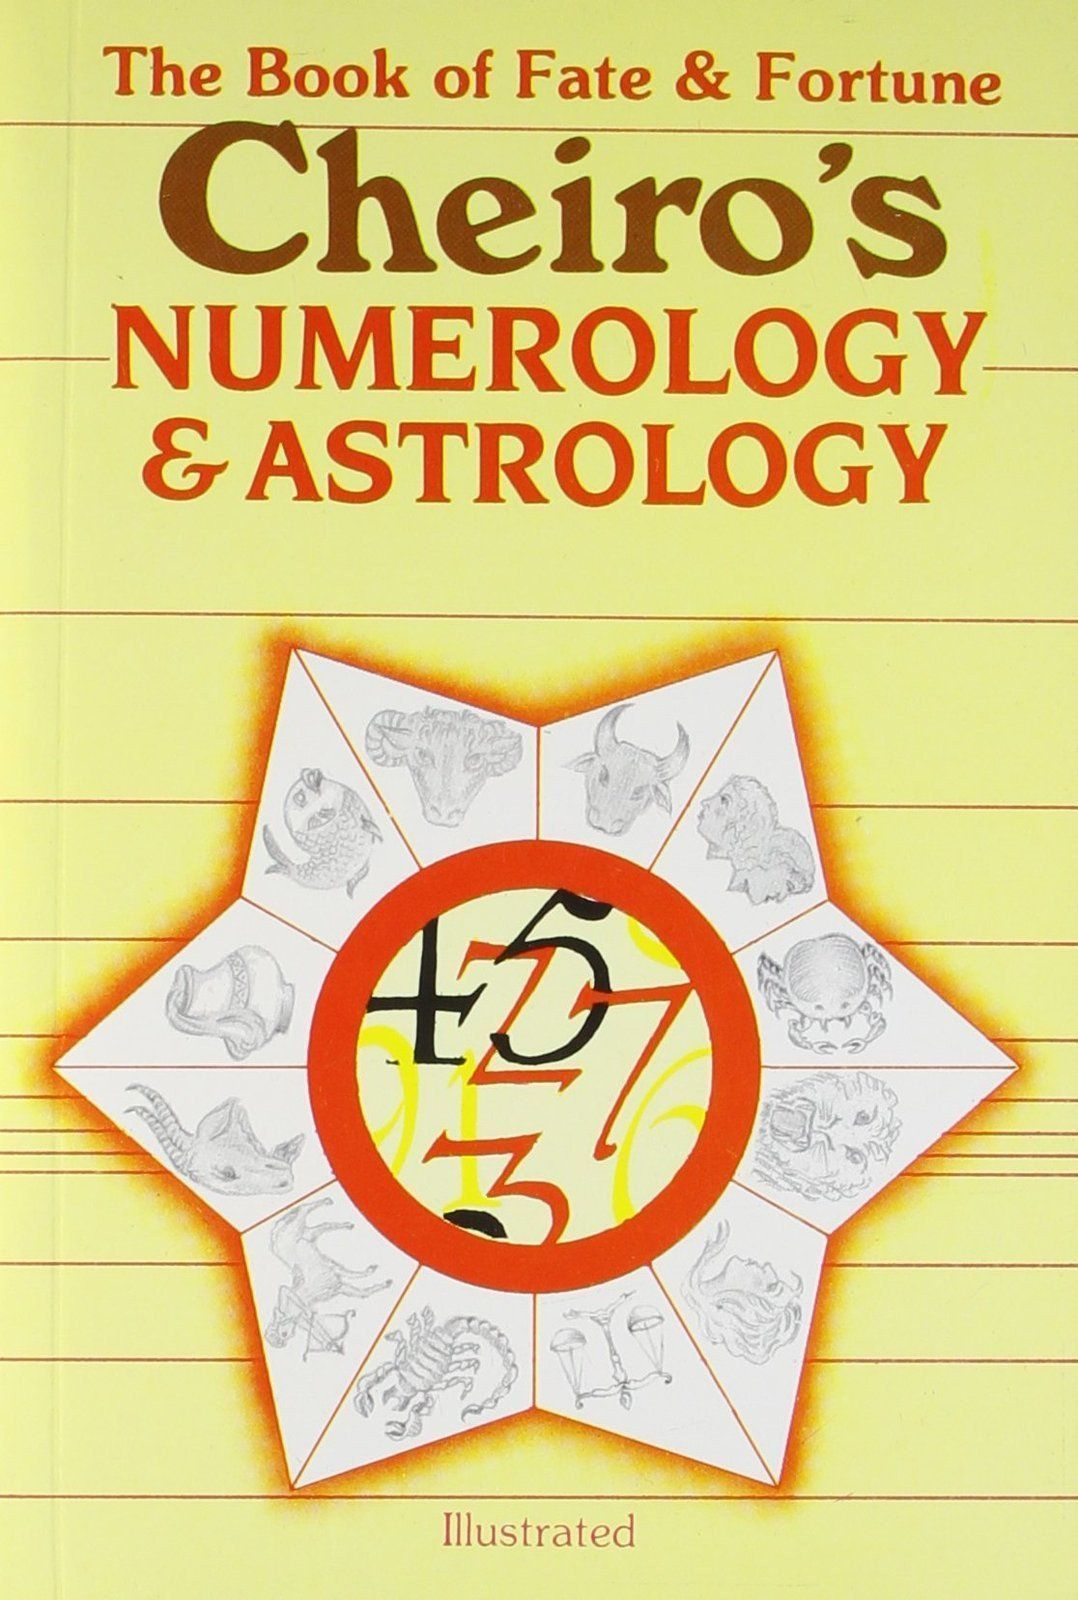 Cheiro's Numerology and Astrology The Book of Fate and